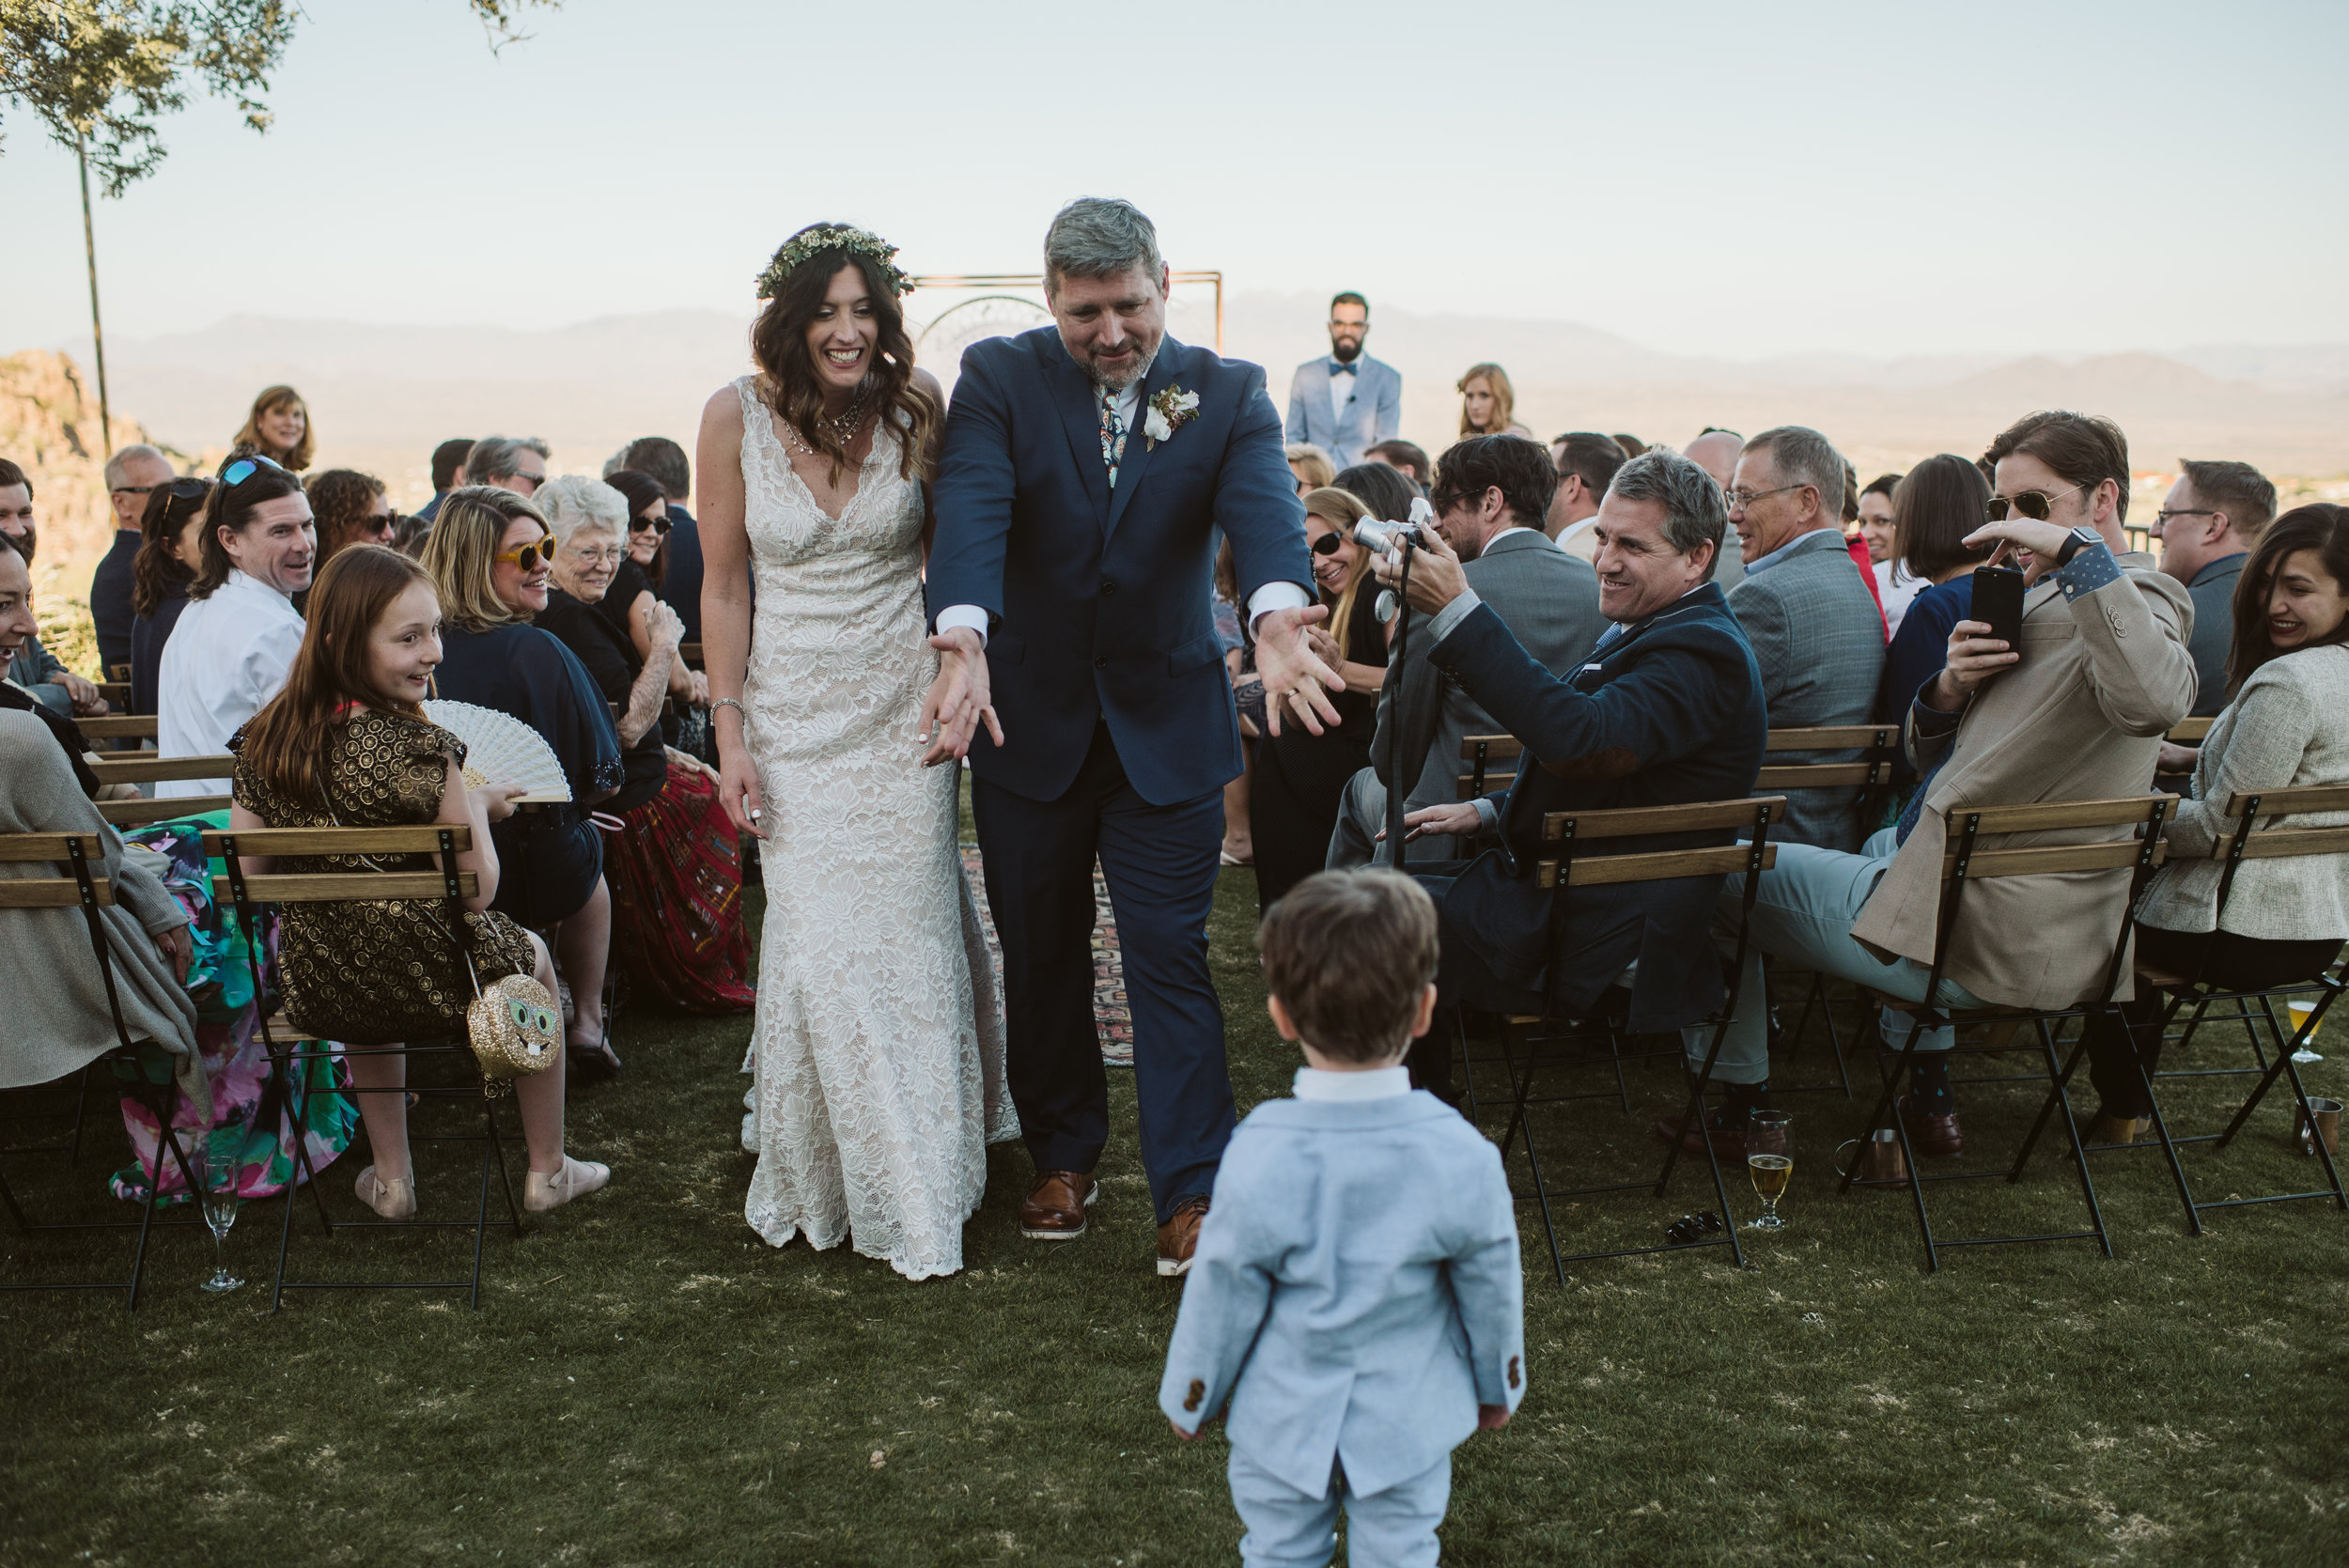 ArizonaWeddingPhotographer_Schad_0640.jpg